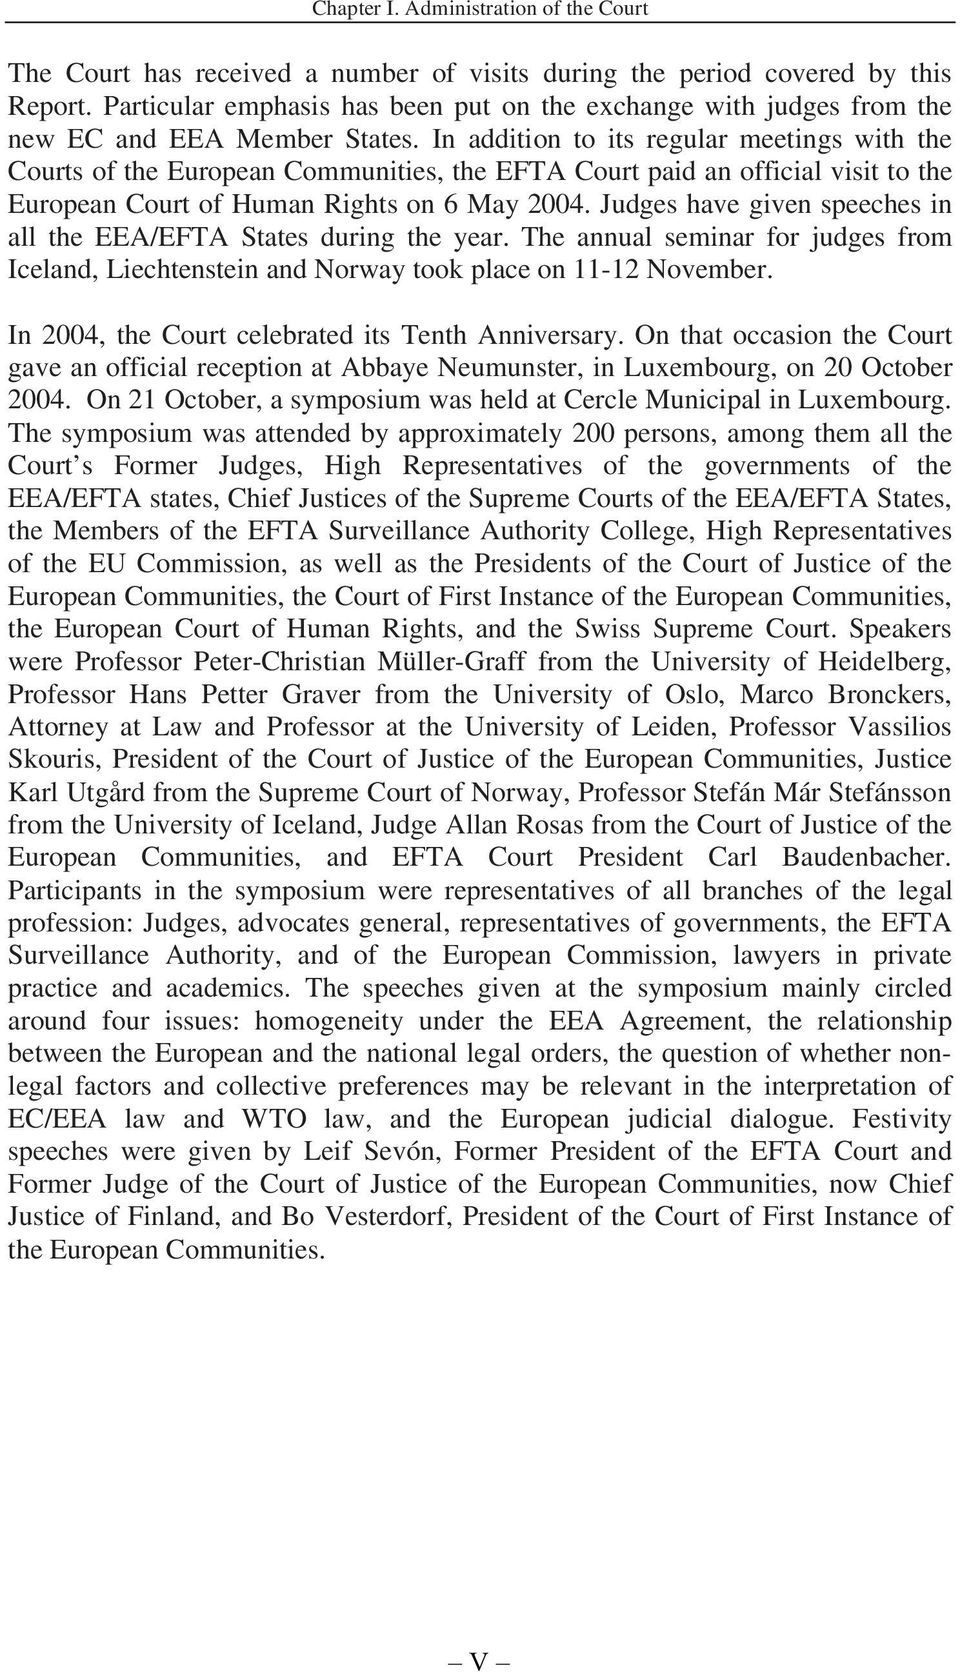 In addition to its regular meetings with the Courts of the European Communities, the EFTA Court paid an official visit to the European Court of Human Rights on 6 May 2004.